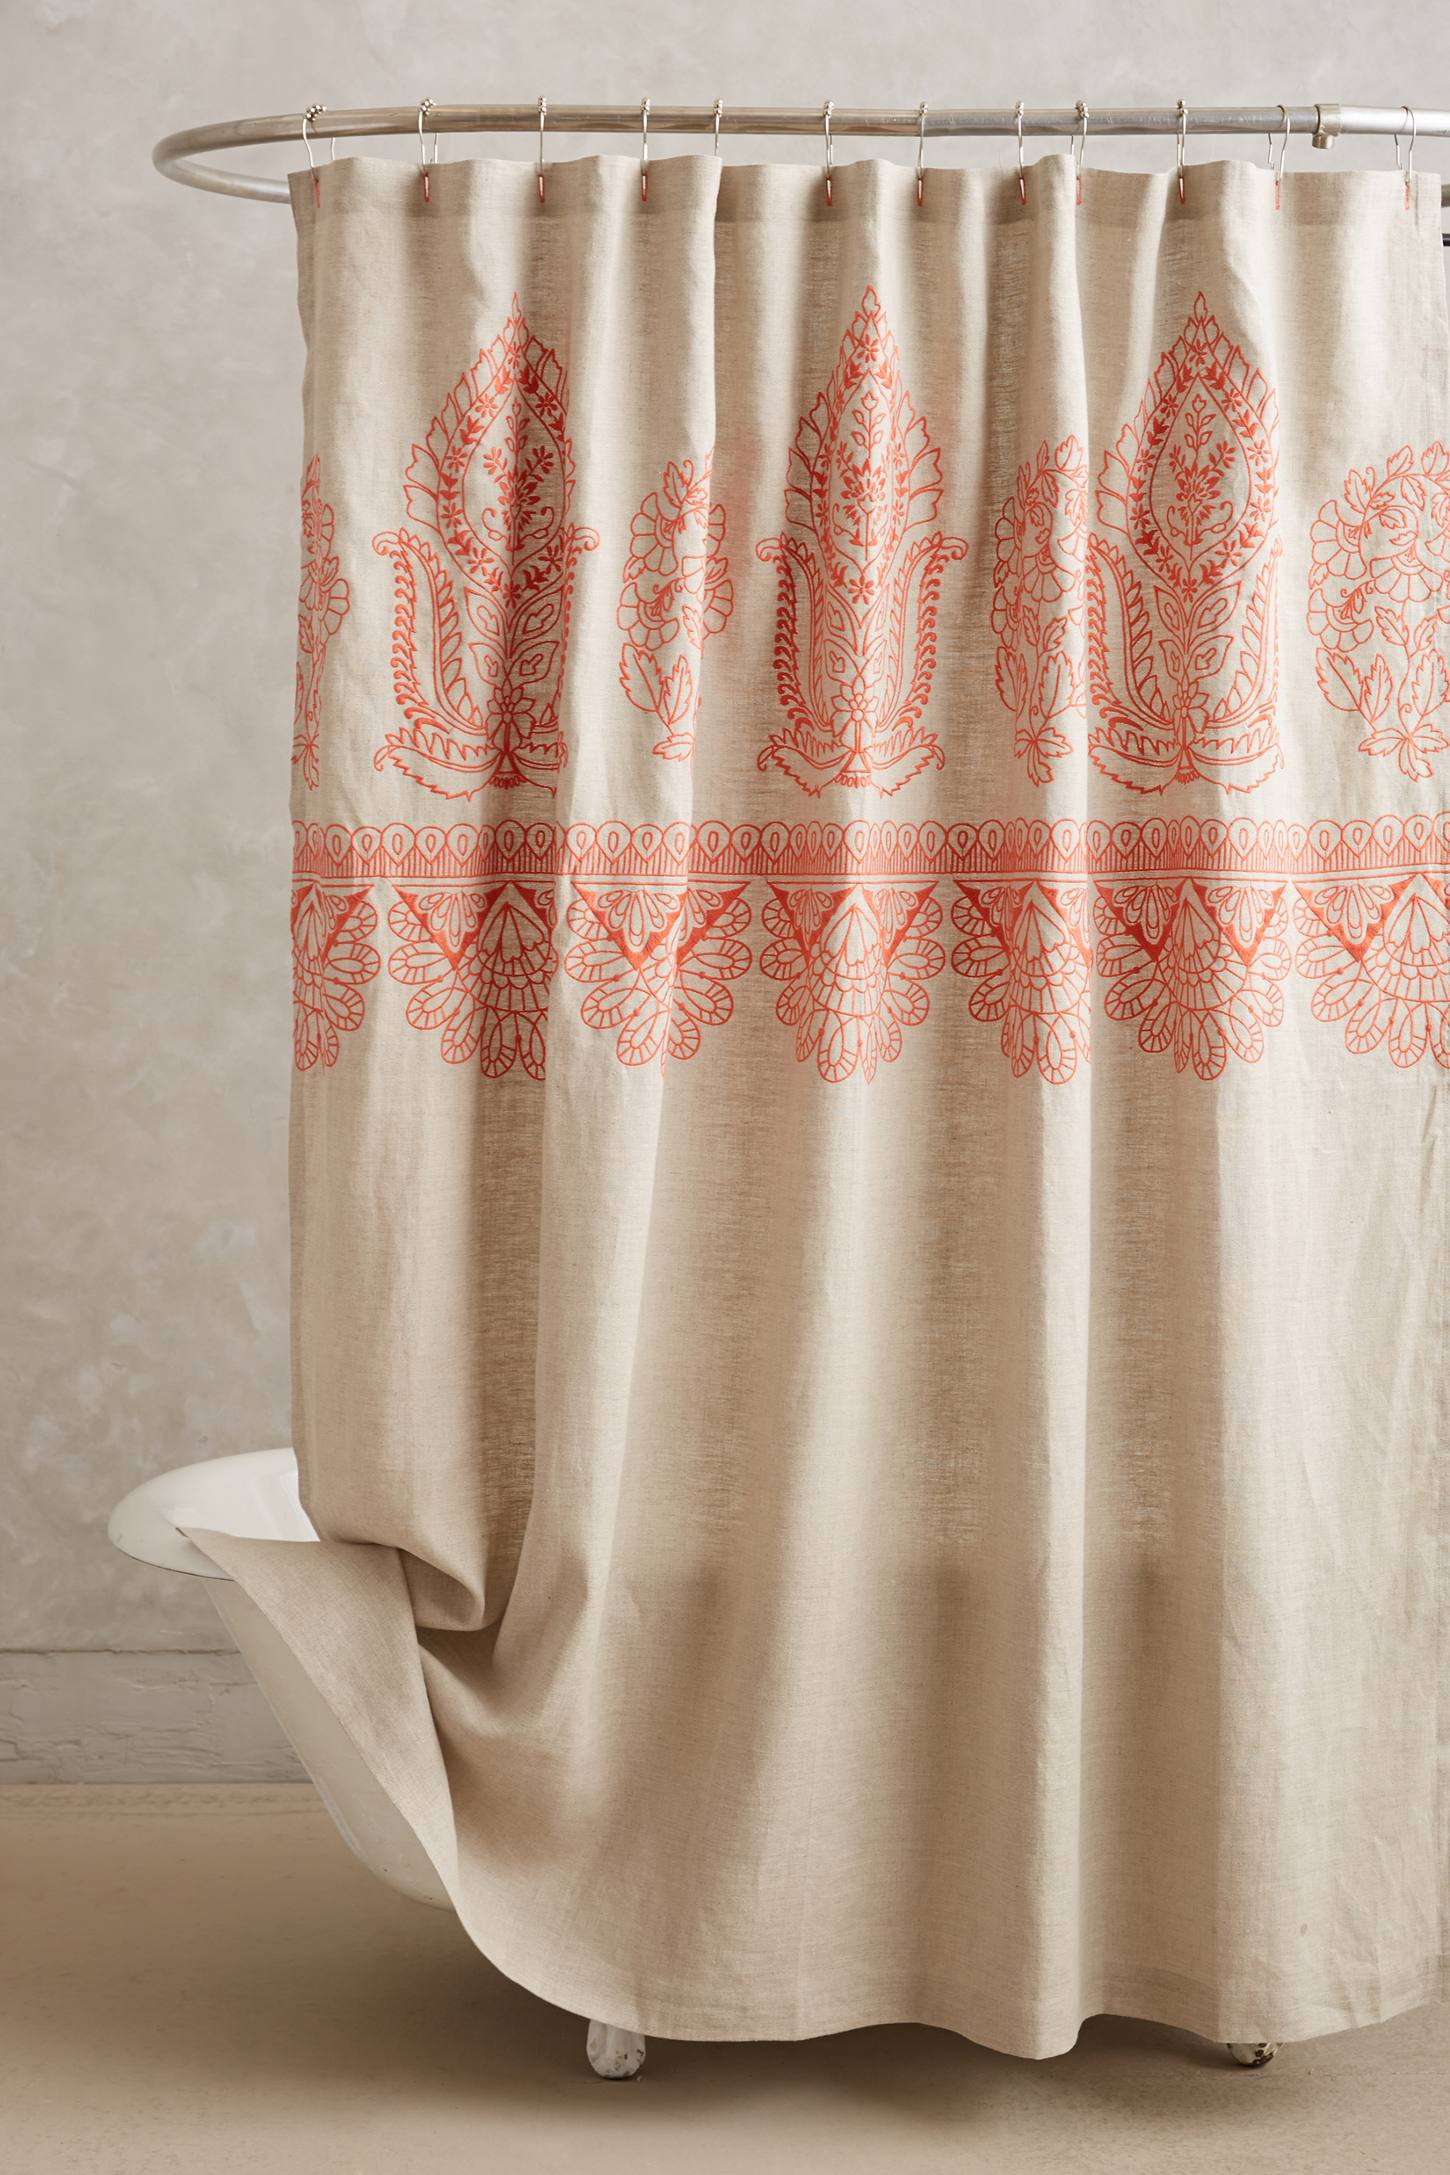 Top 20 Shower Curtains - Decoholic